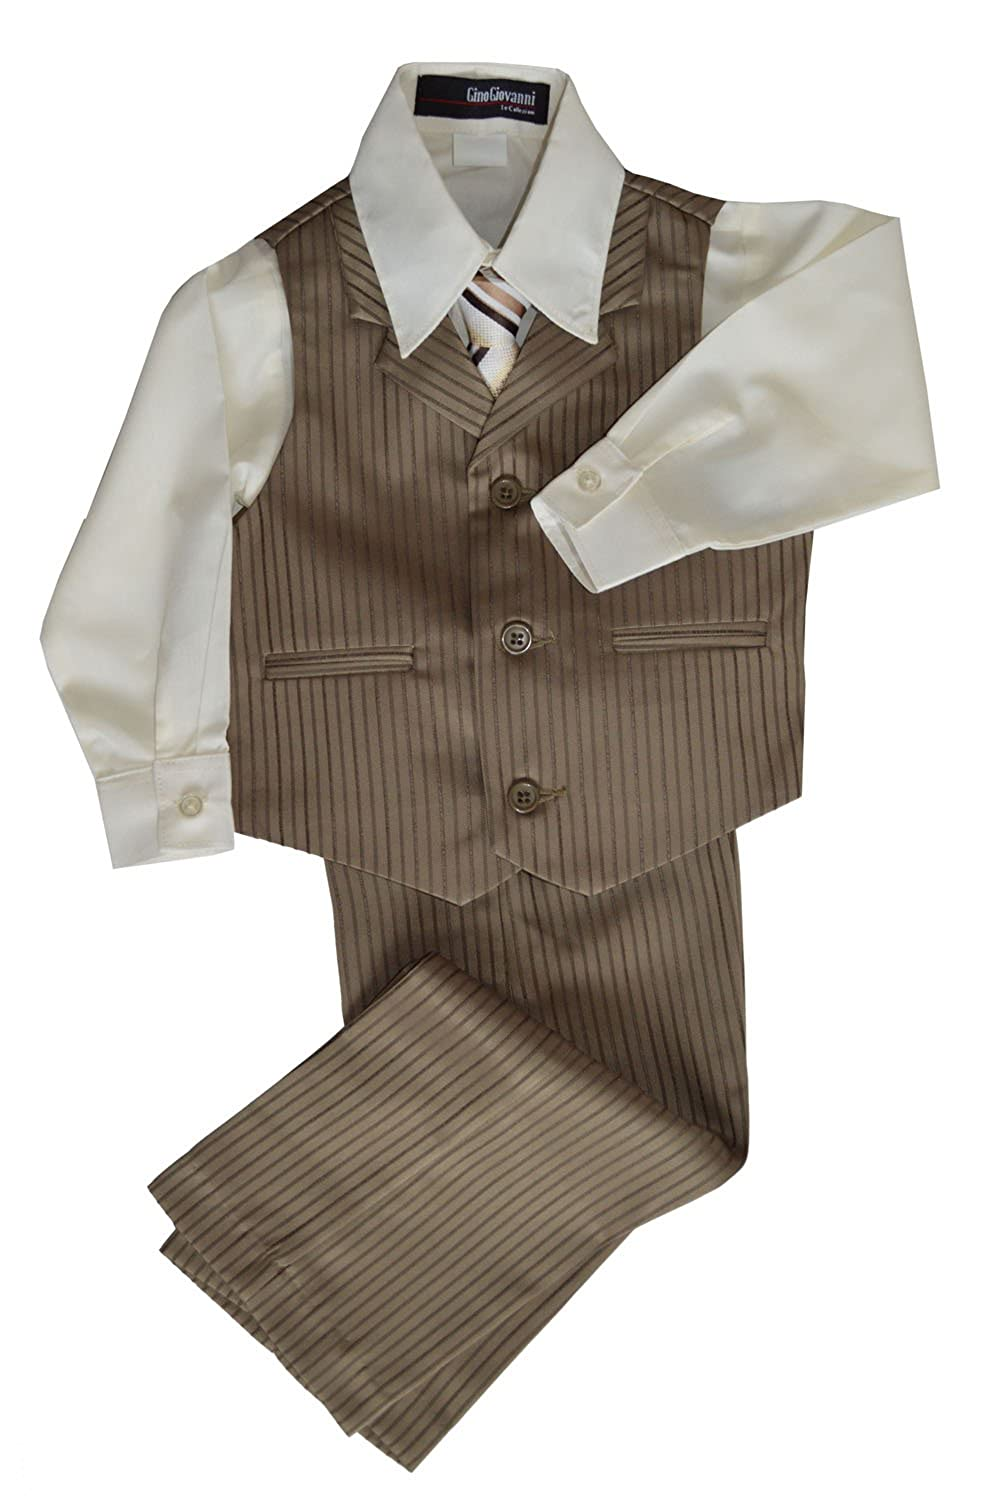 1920s Children Fashions: Girls, Boys, Baby Costumes Gino Giovanni Pinstripe Boys Formal Dresswear Vest Set $28.18 AT vintagedancer.com